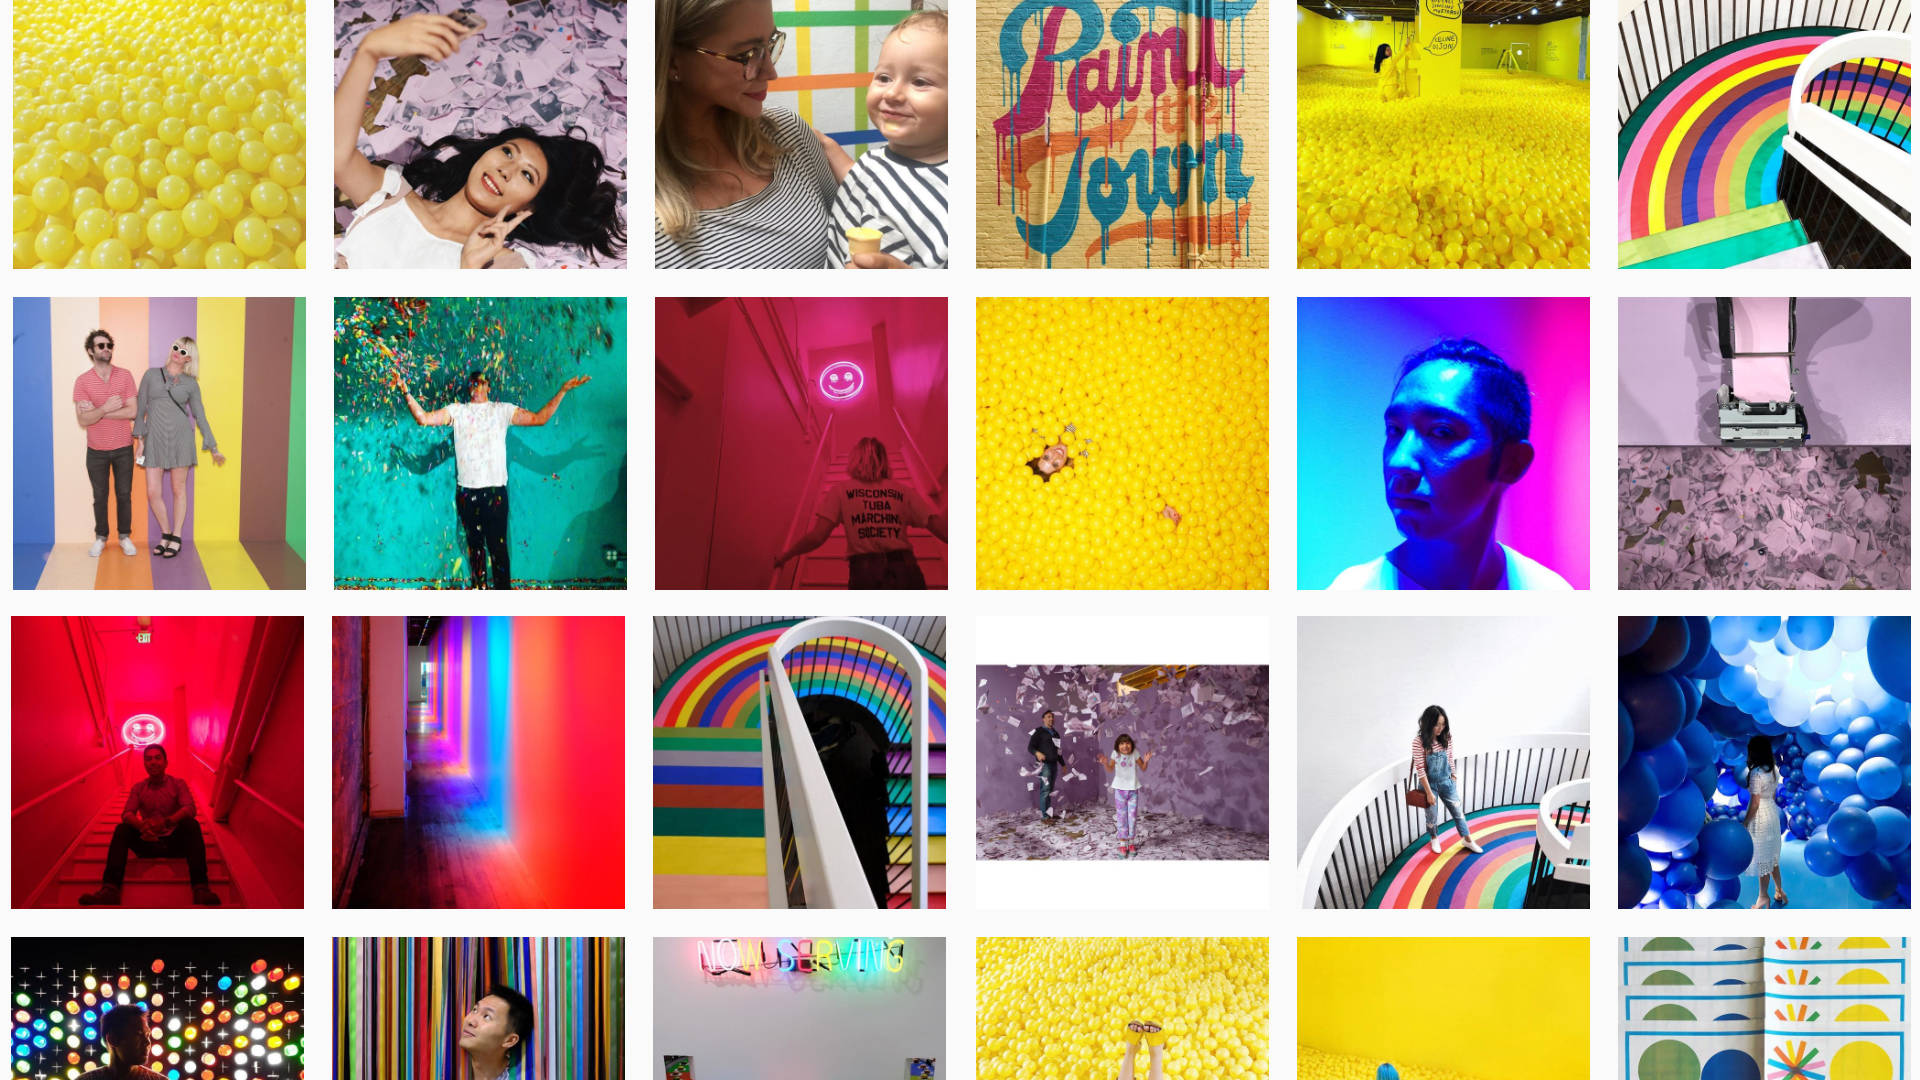 Public images tagged #colorfactoryco on Instagram. Courtesy of Instagram